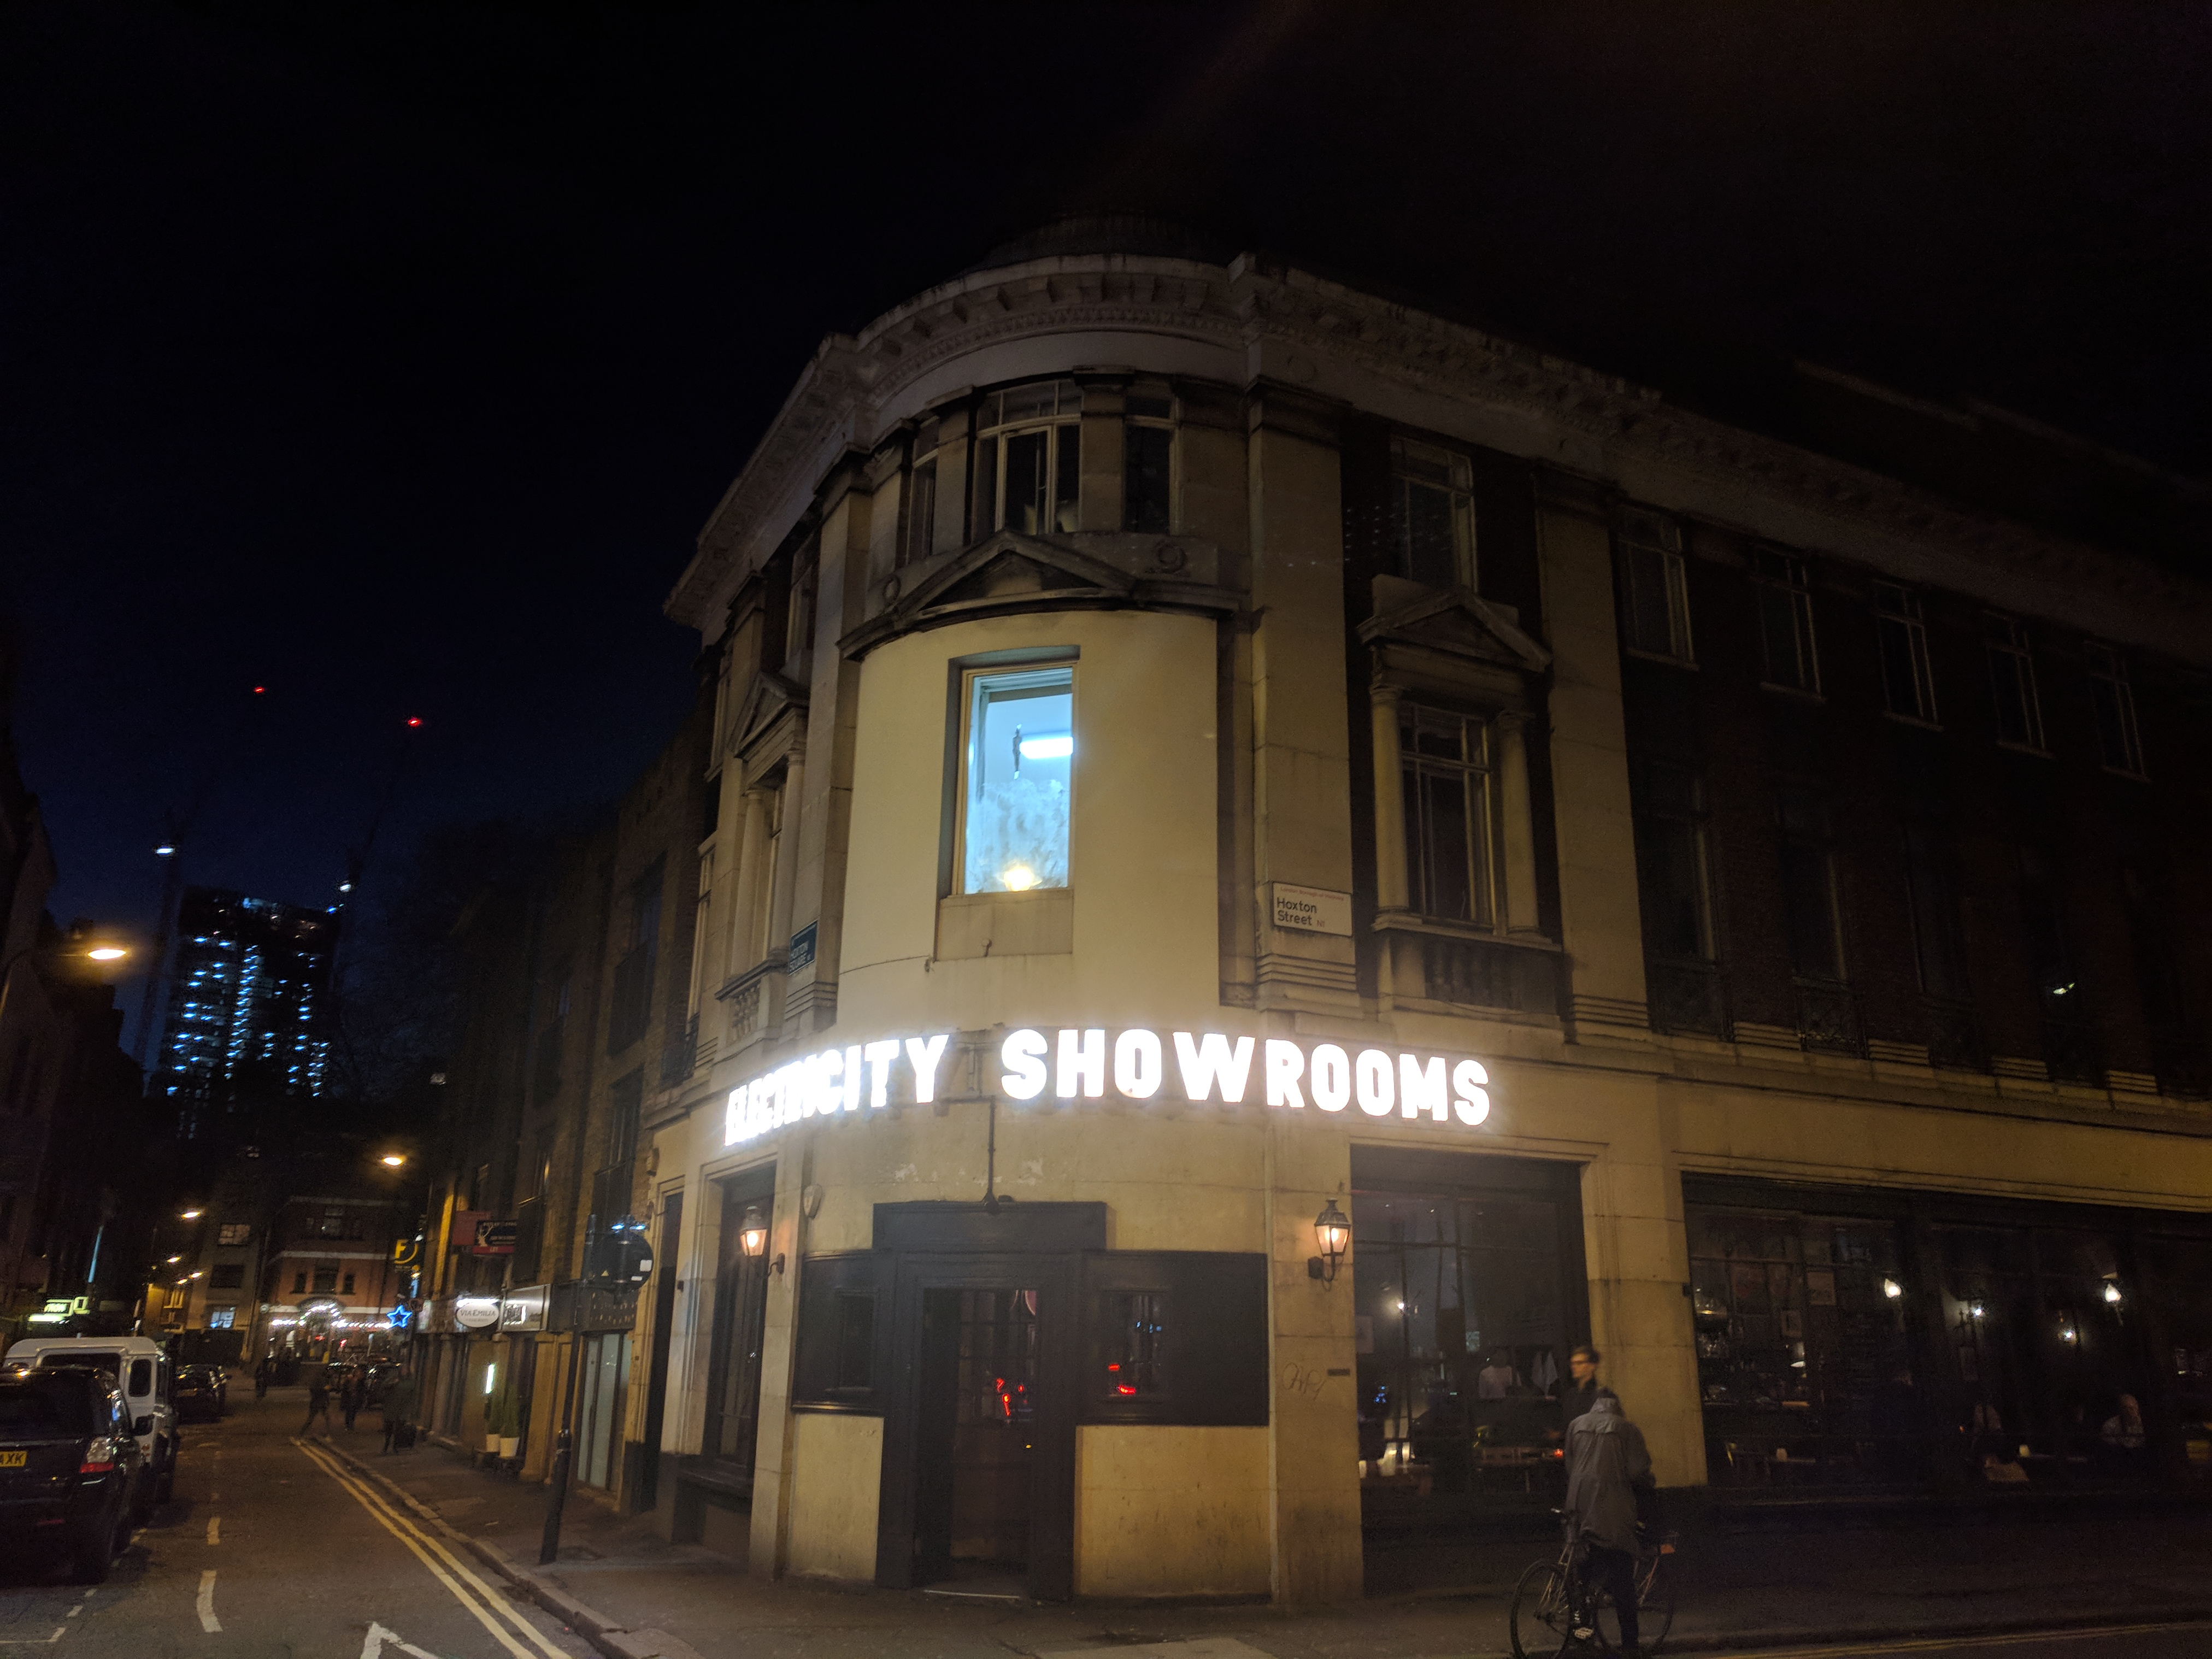 electricity-showrooms